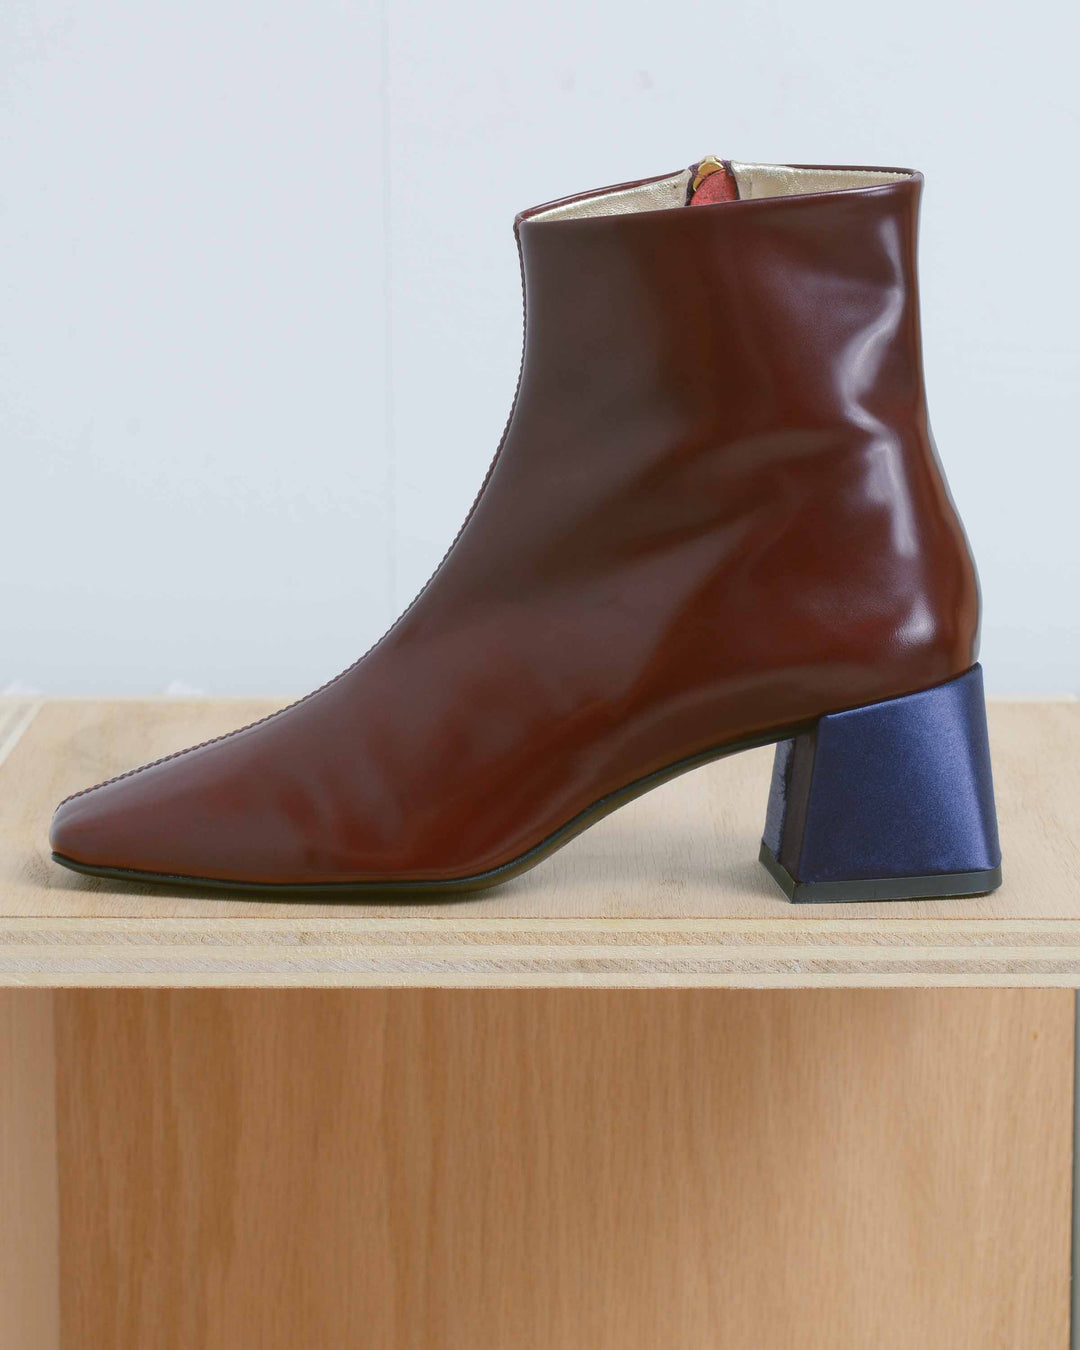 Oxblood Simple Boots